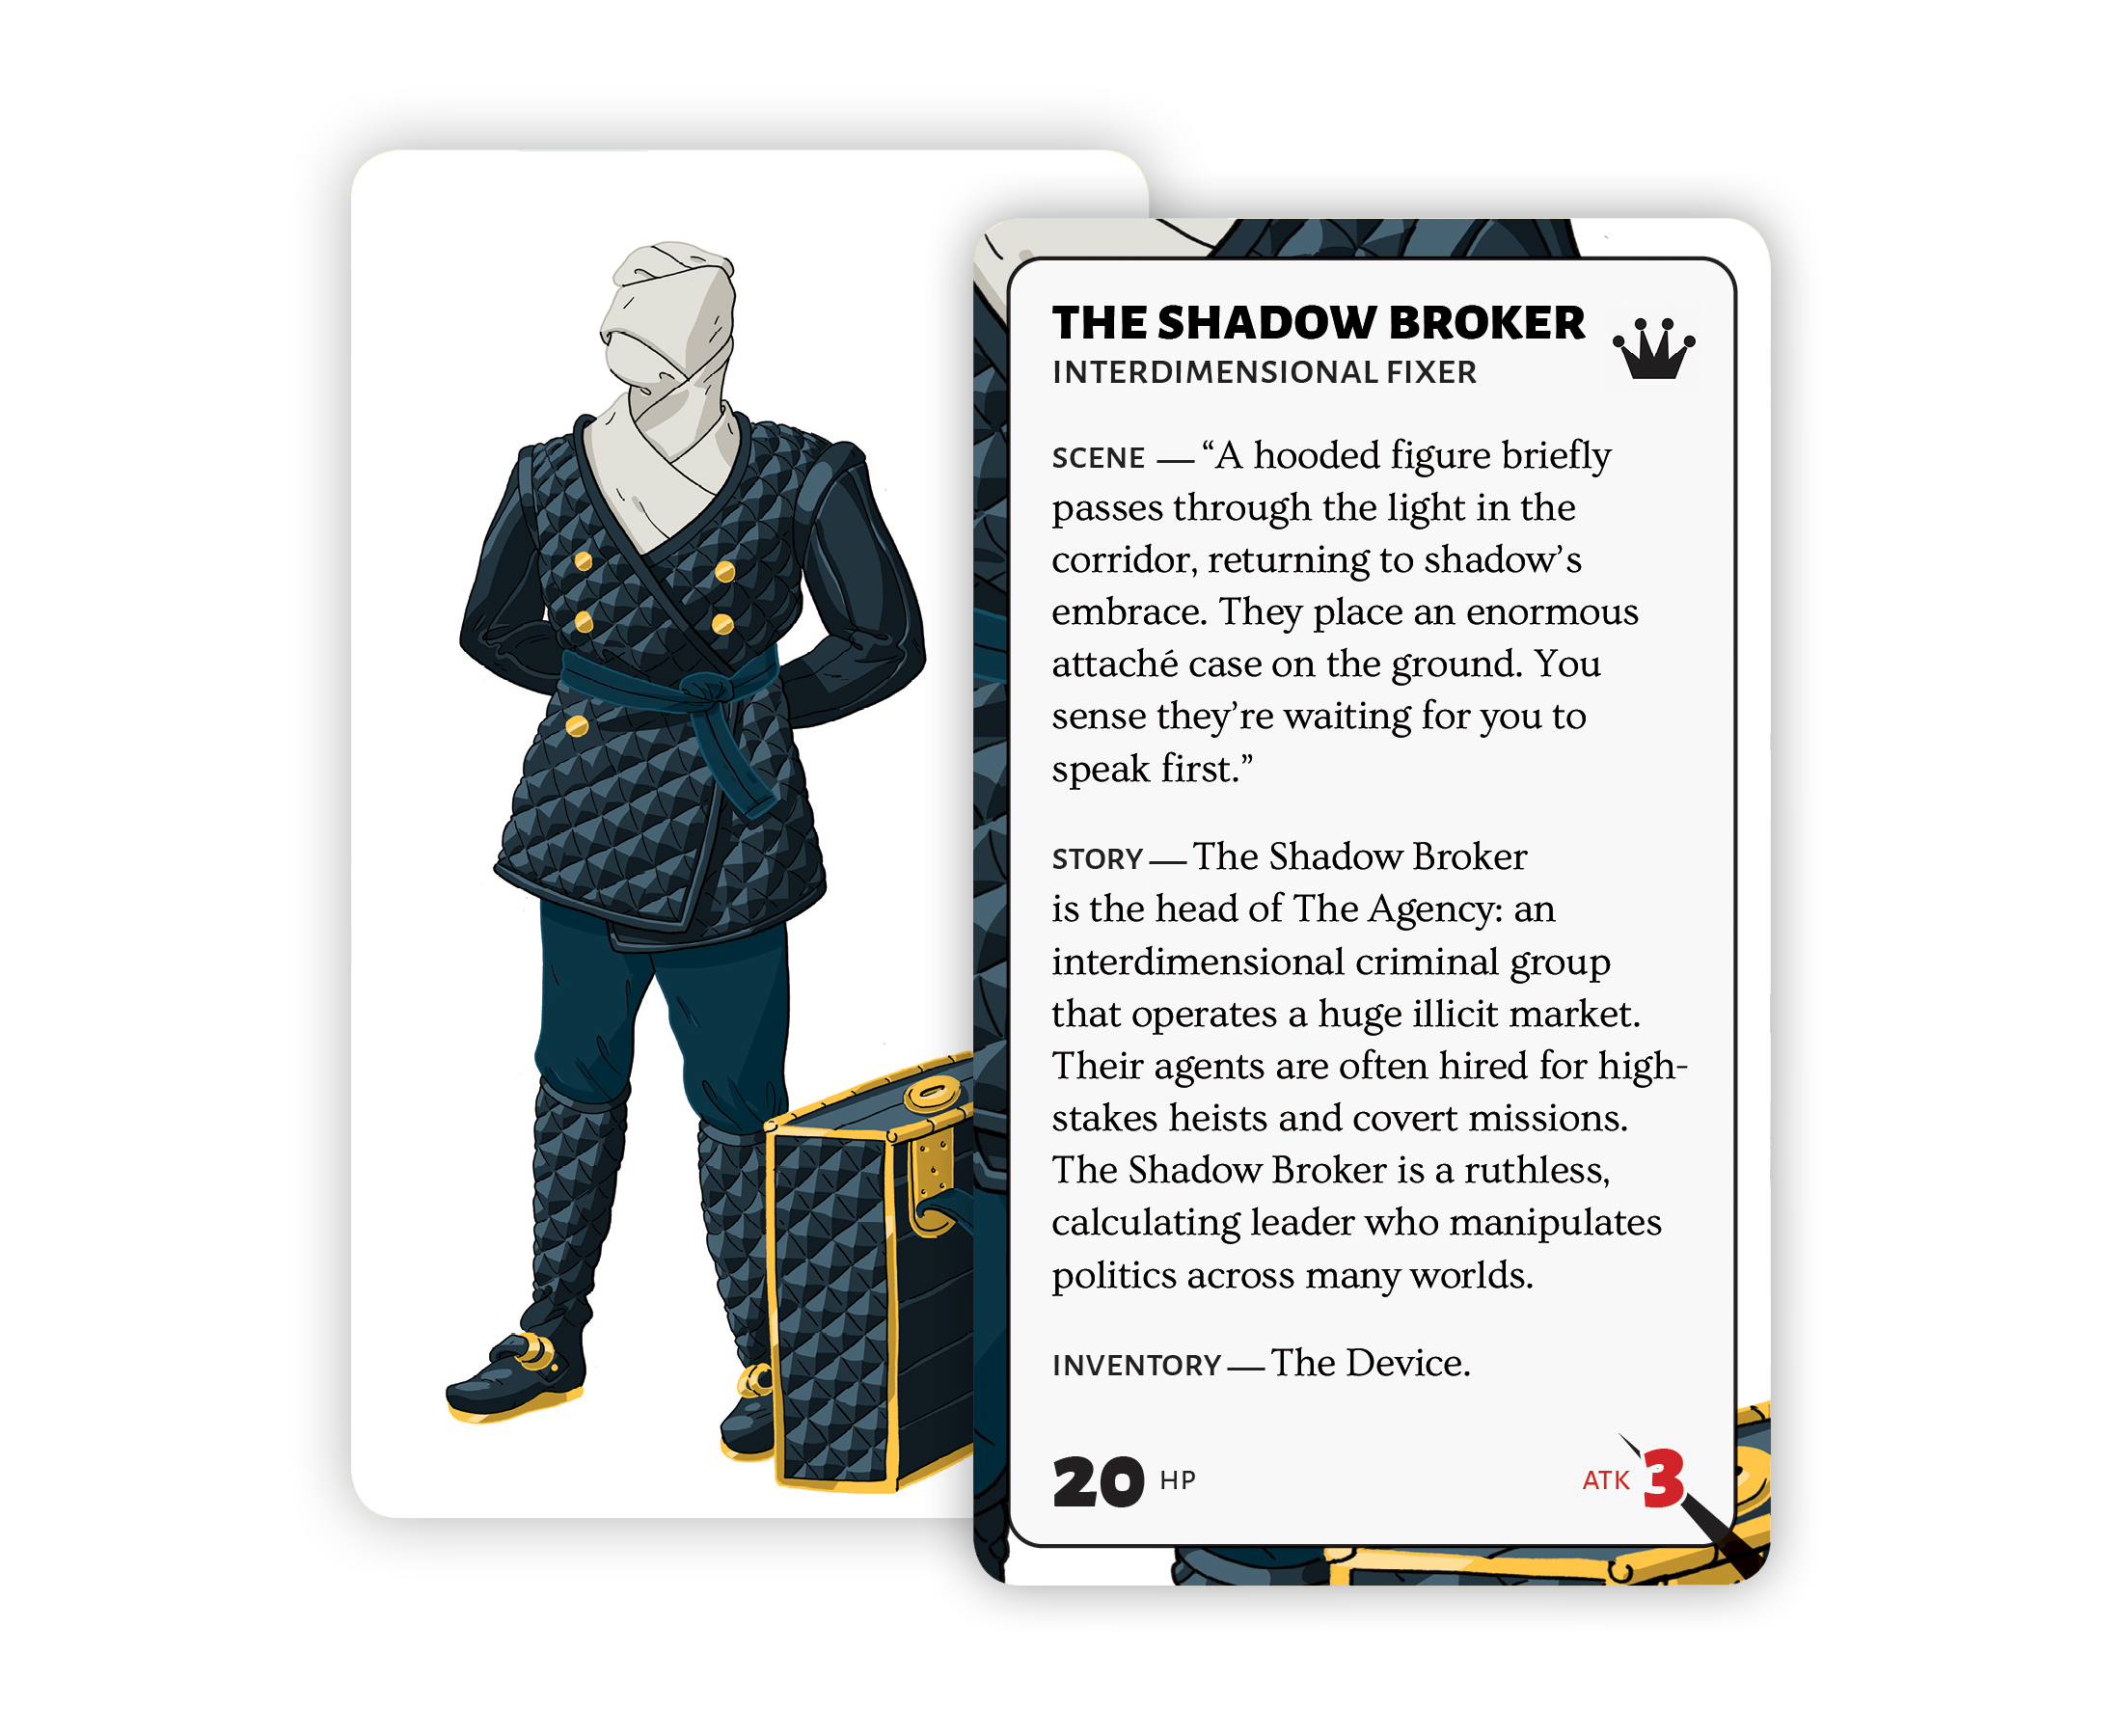 The Shadow Broker is the head of The Agency: an interdimensional criminal group that operates a huge illicit market.